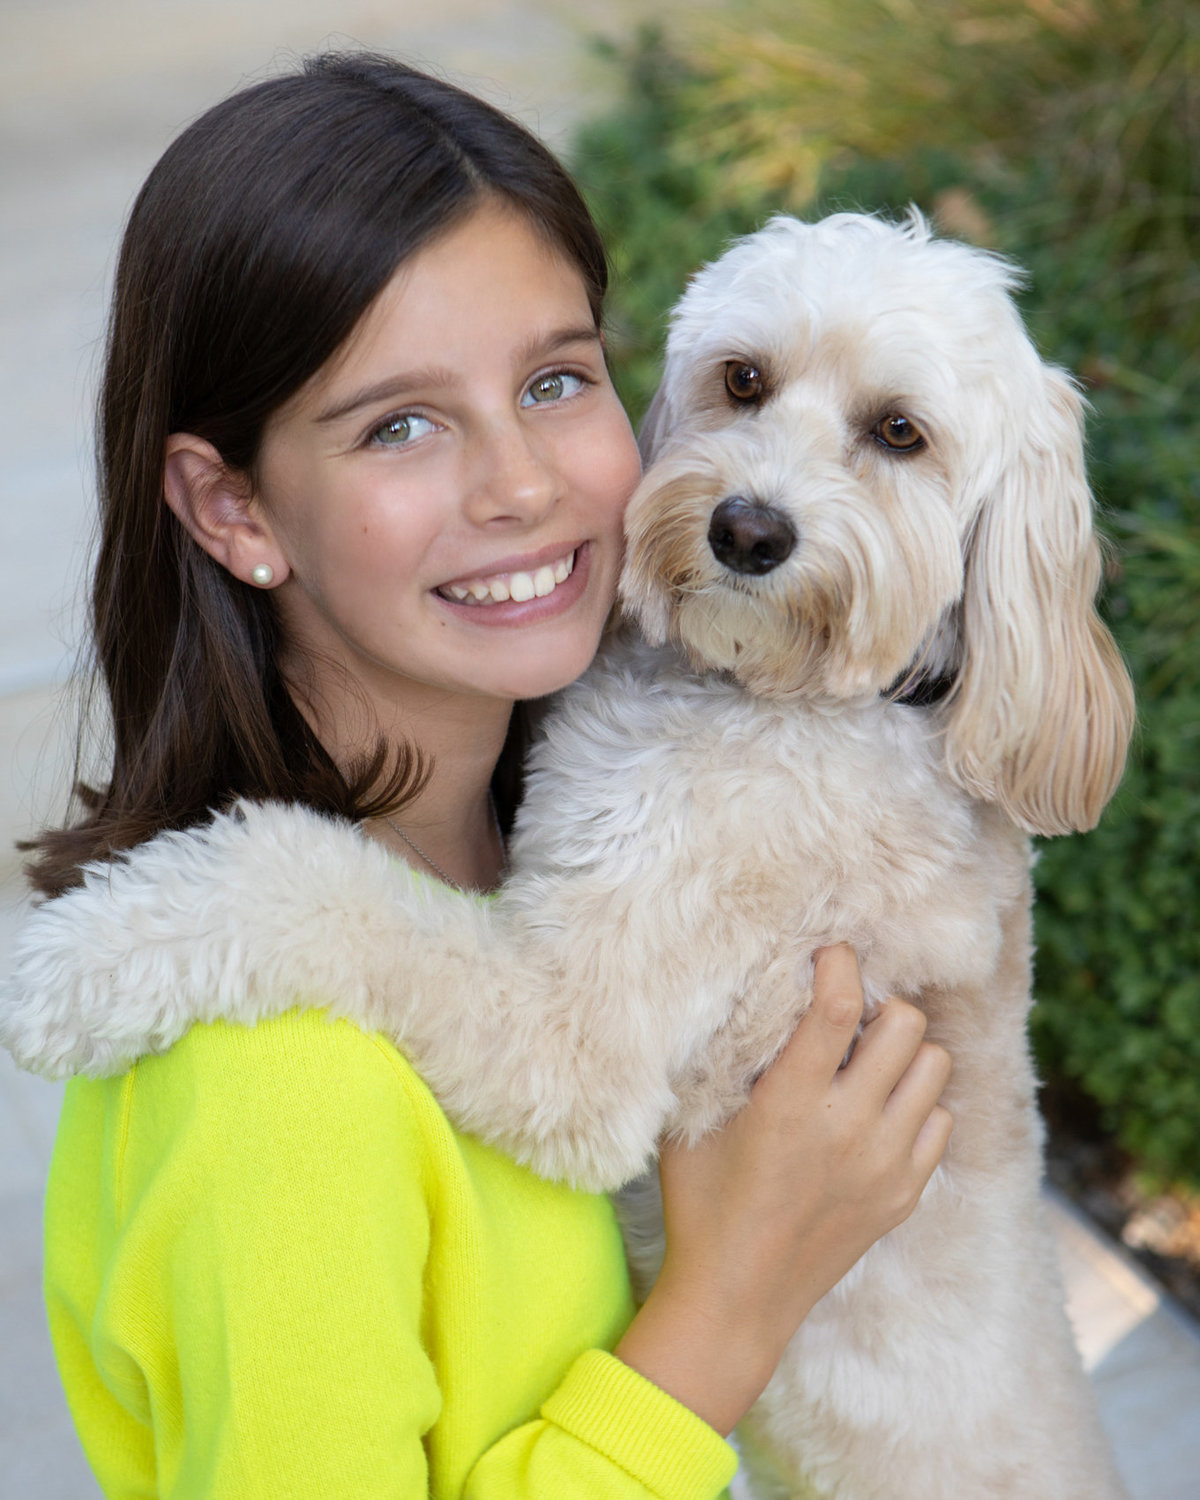 Outdoor photo session, teenager with dog